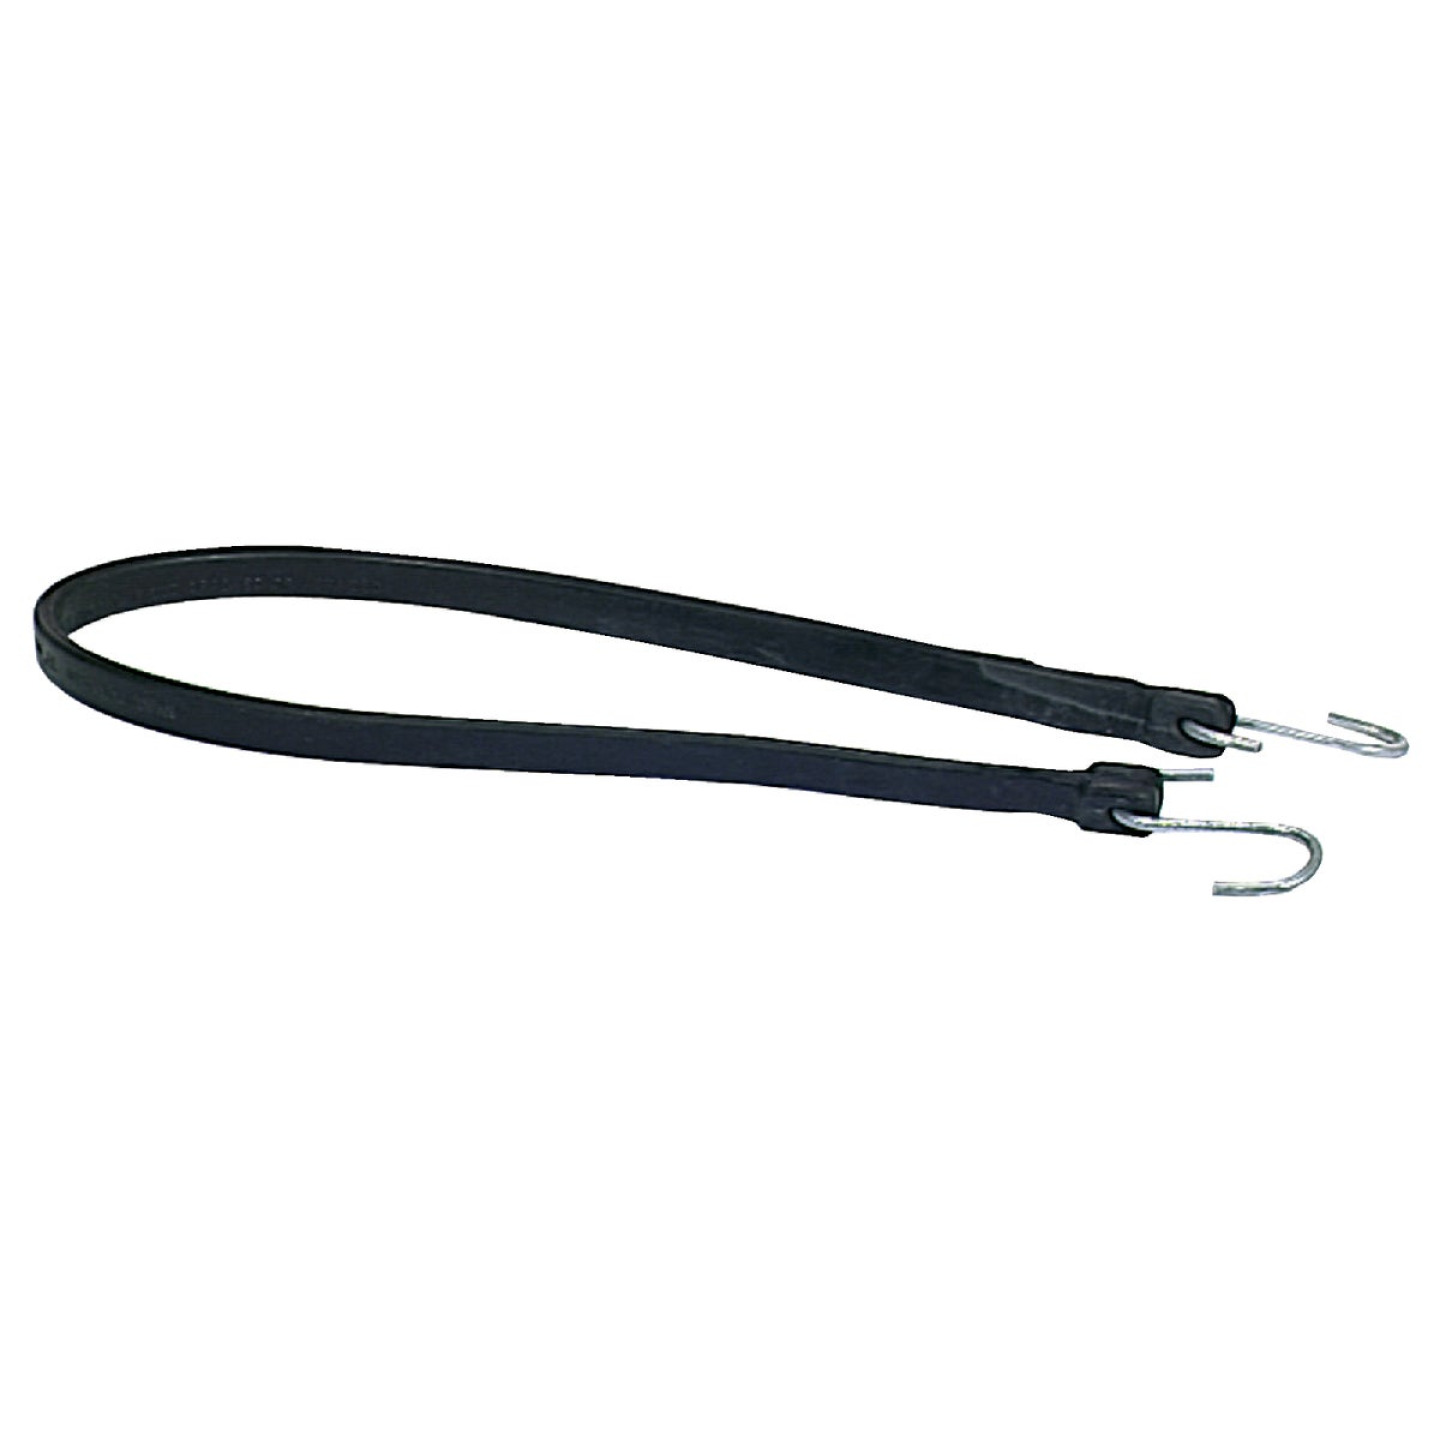 35.5 In. Hook-to-Hook Black Rubber Tarp Strap Image 1